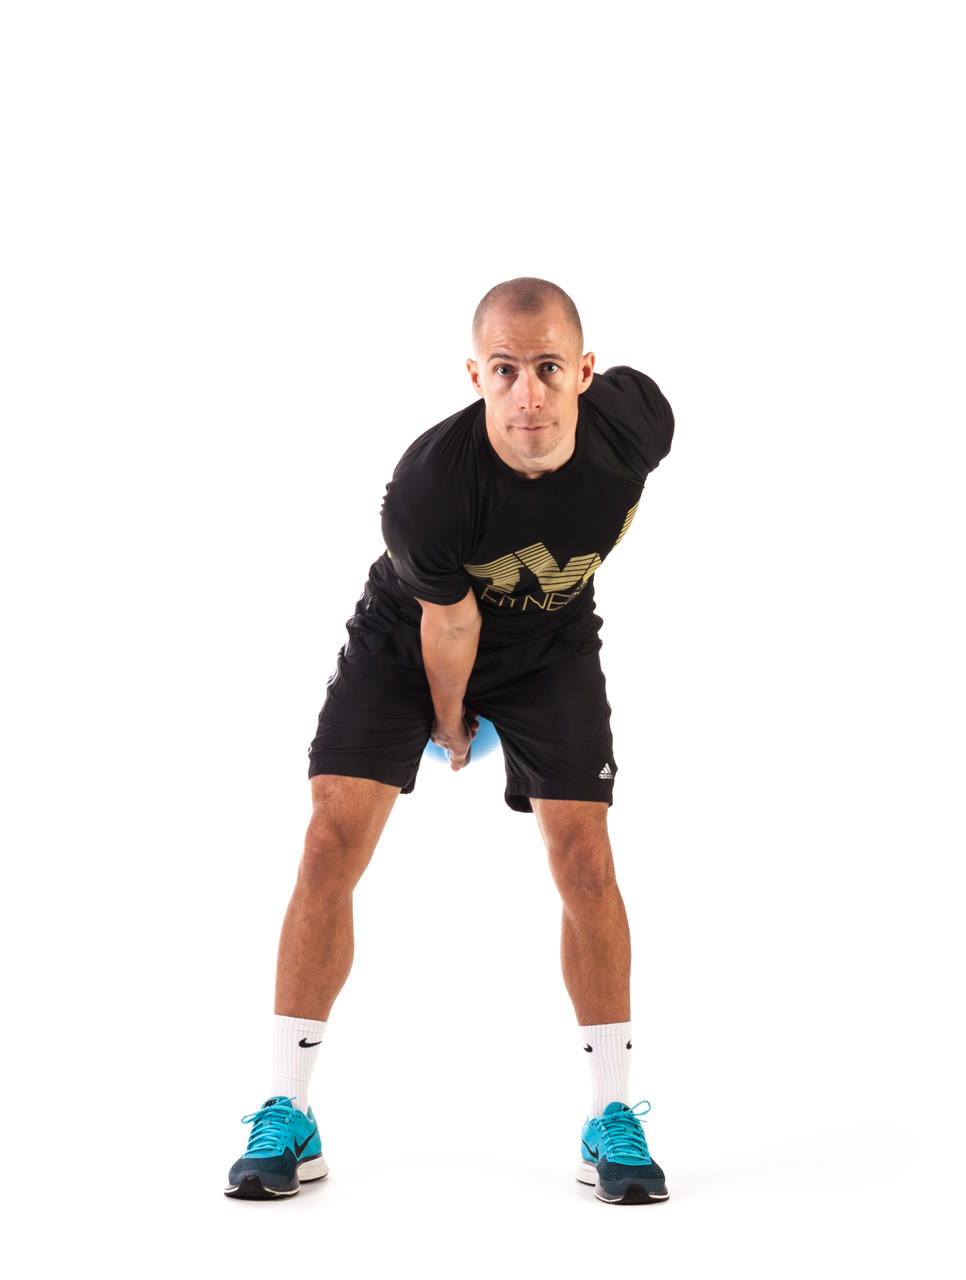 One-Arm Kettlebell Swing frame #4